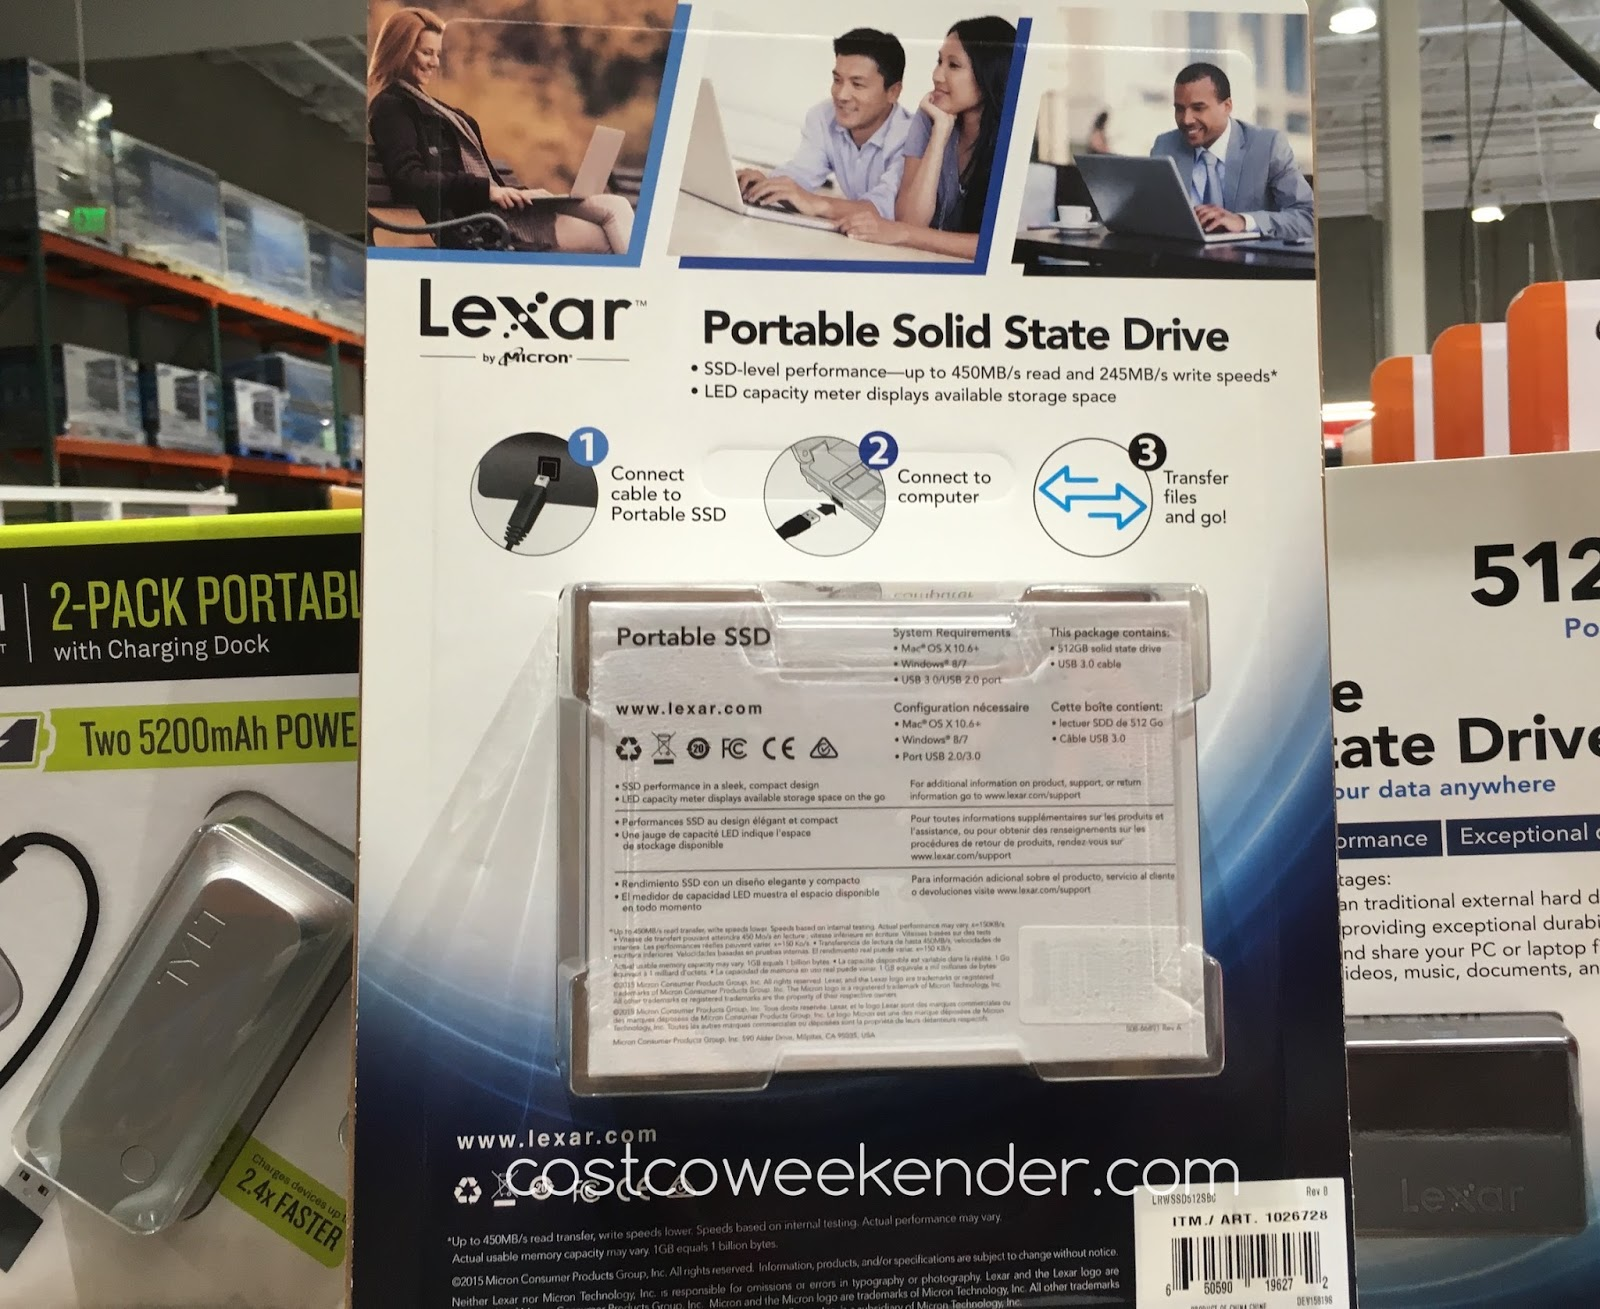 Lexar 512gb Portable Solid State Drive | Costco Weekender